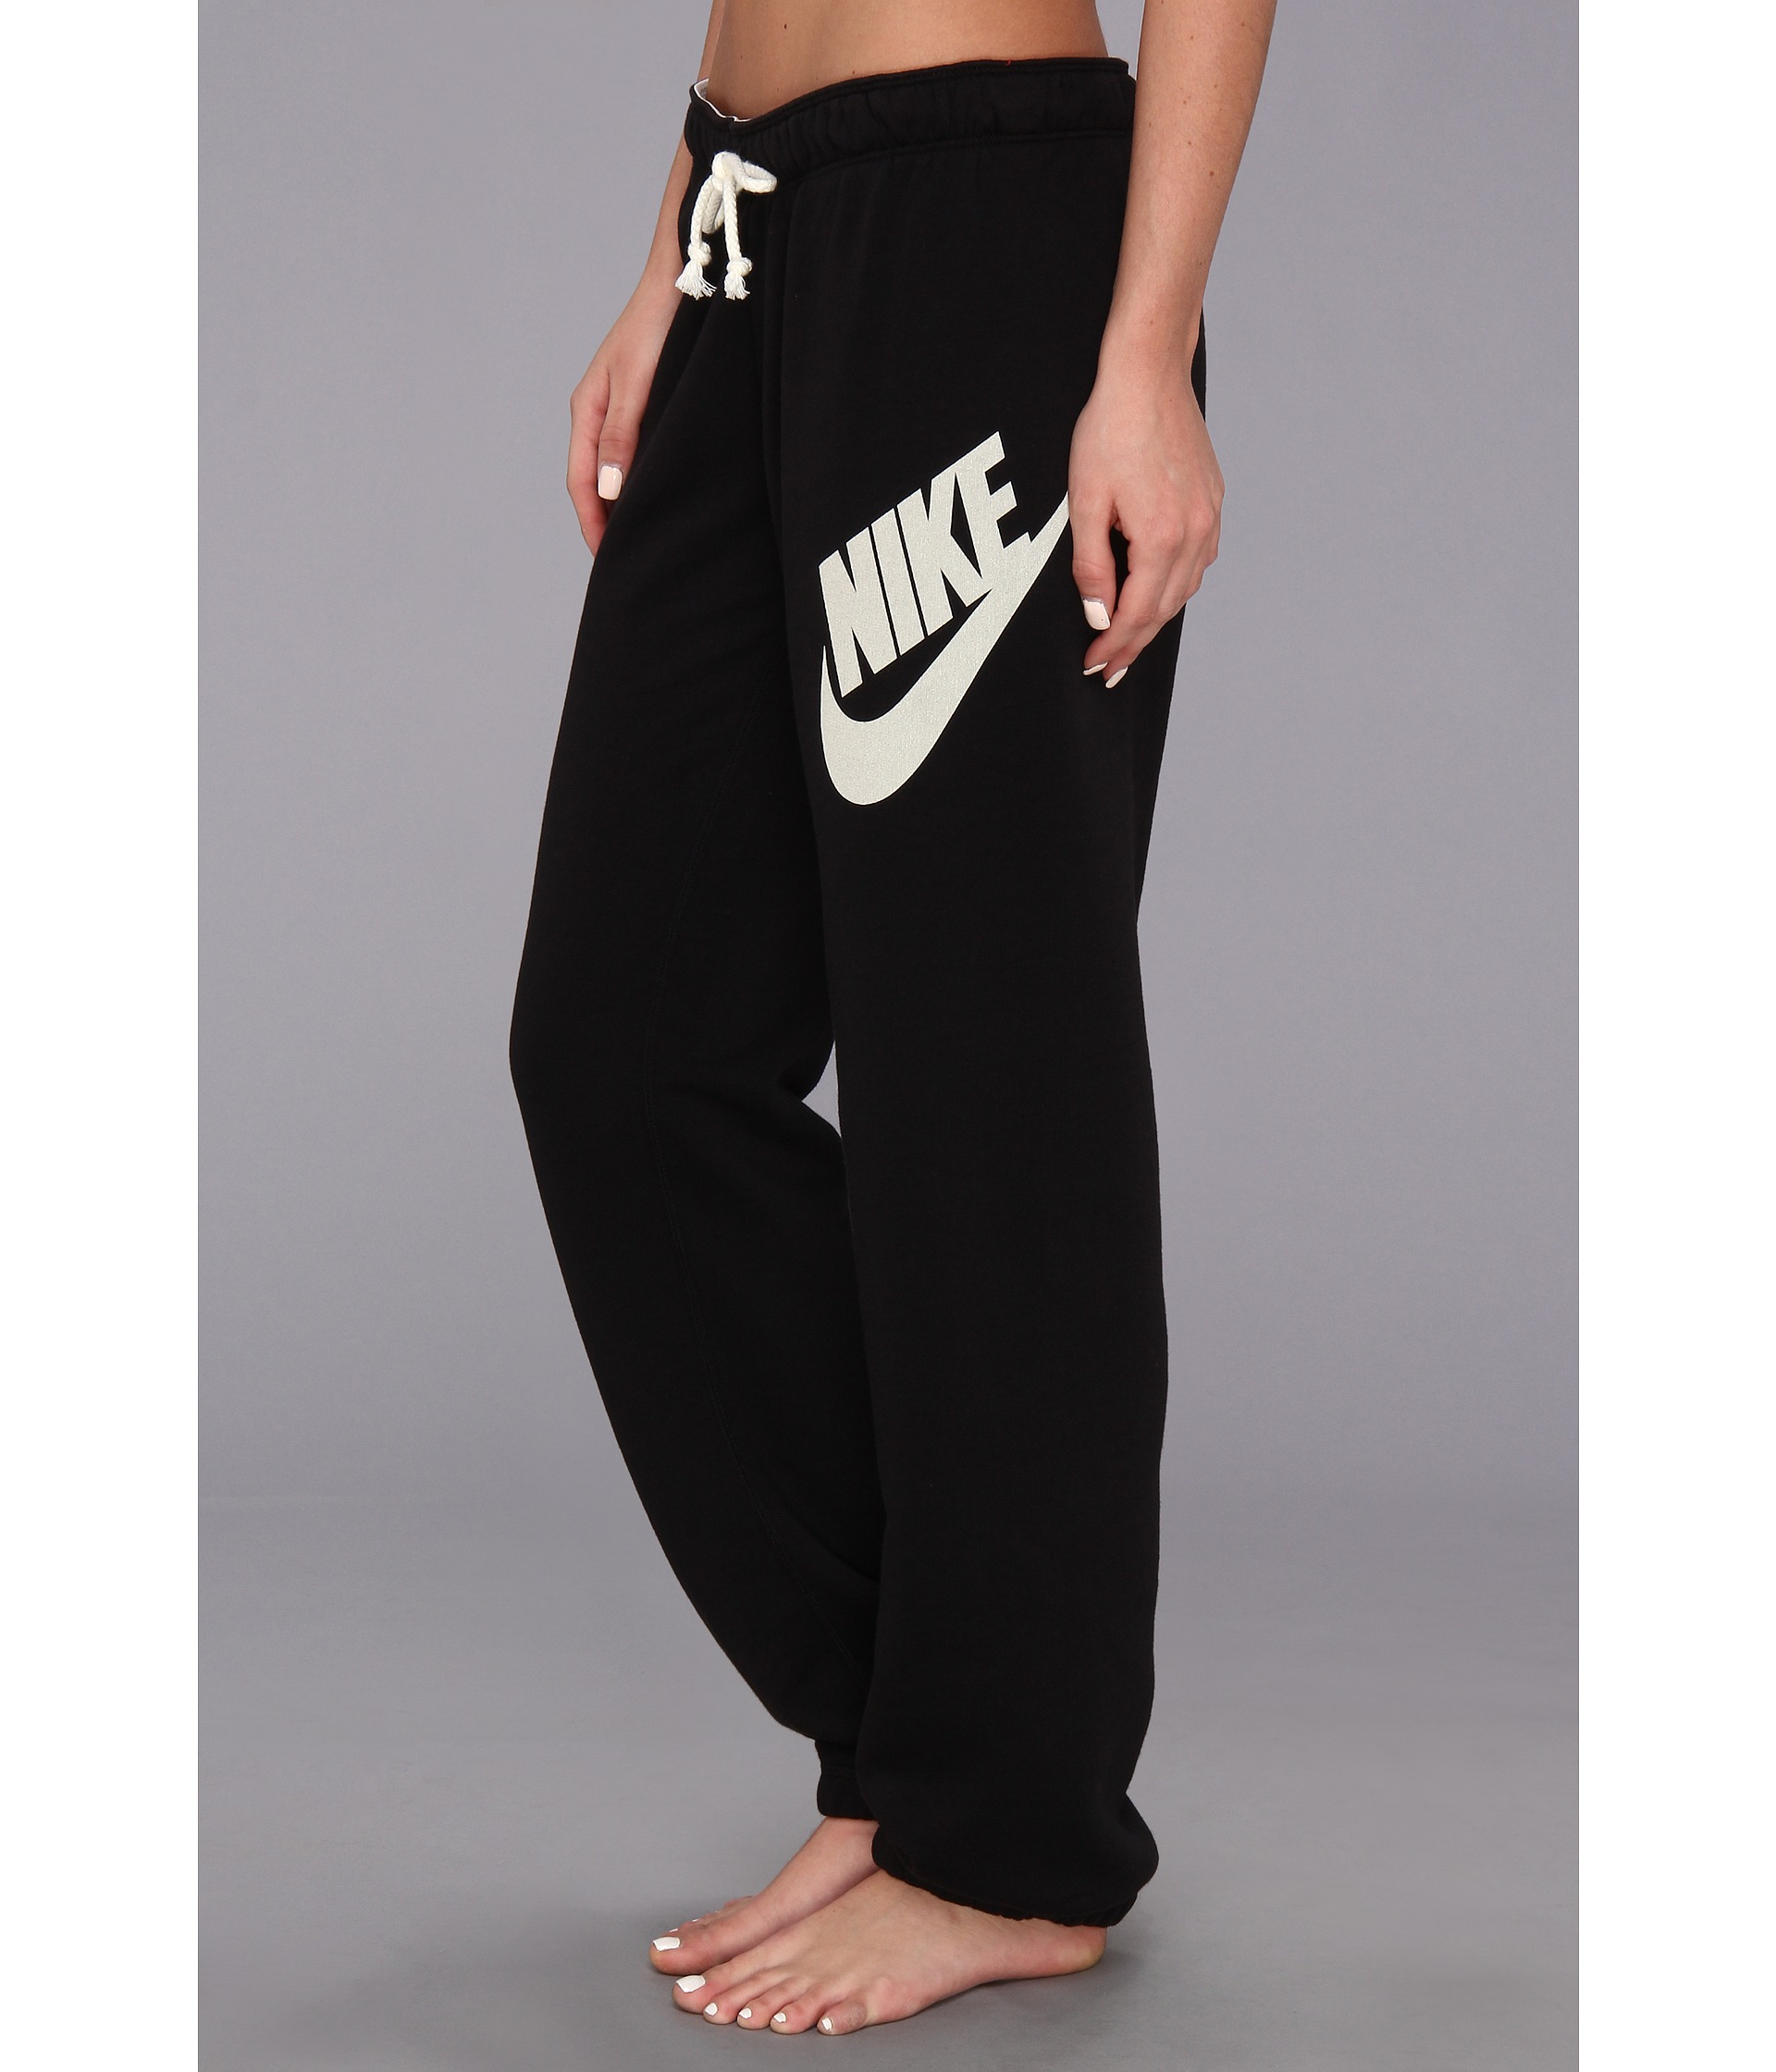 Luxury Snell Notes That It Isnt Only Her Fitness Routines That Receive Comments, But Her Clothing Choices  Apparel Giant Nike Has Also Expanded Its Line After